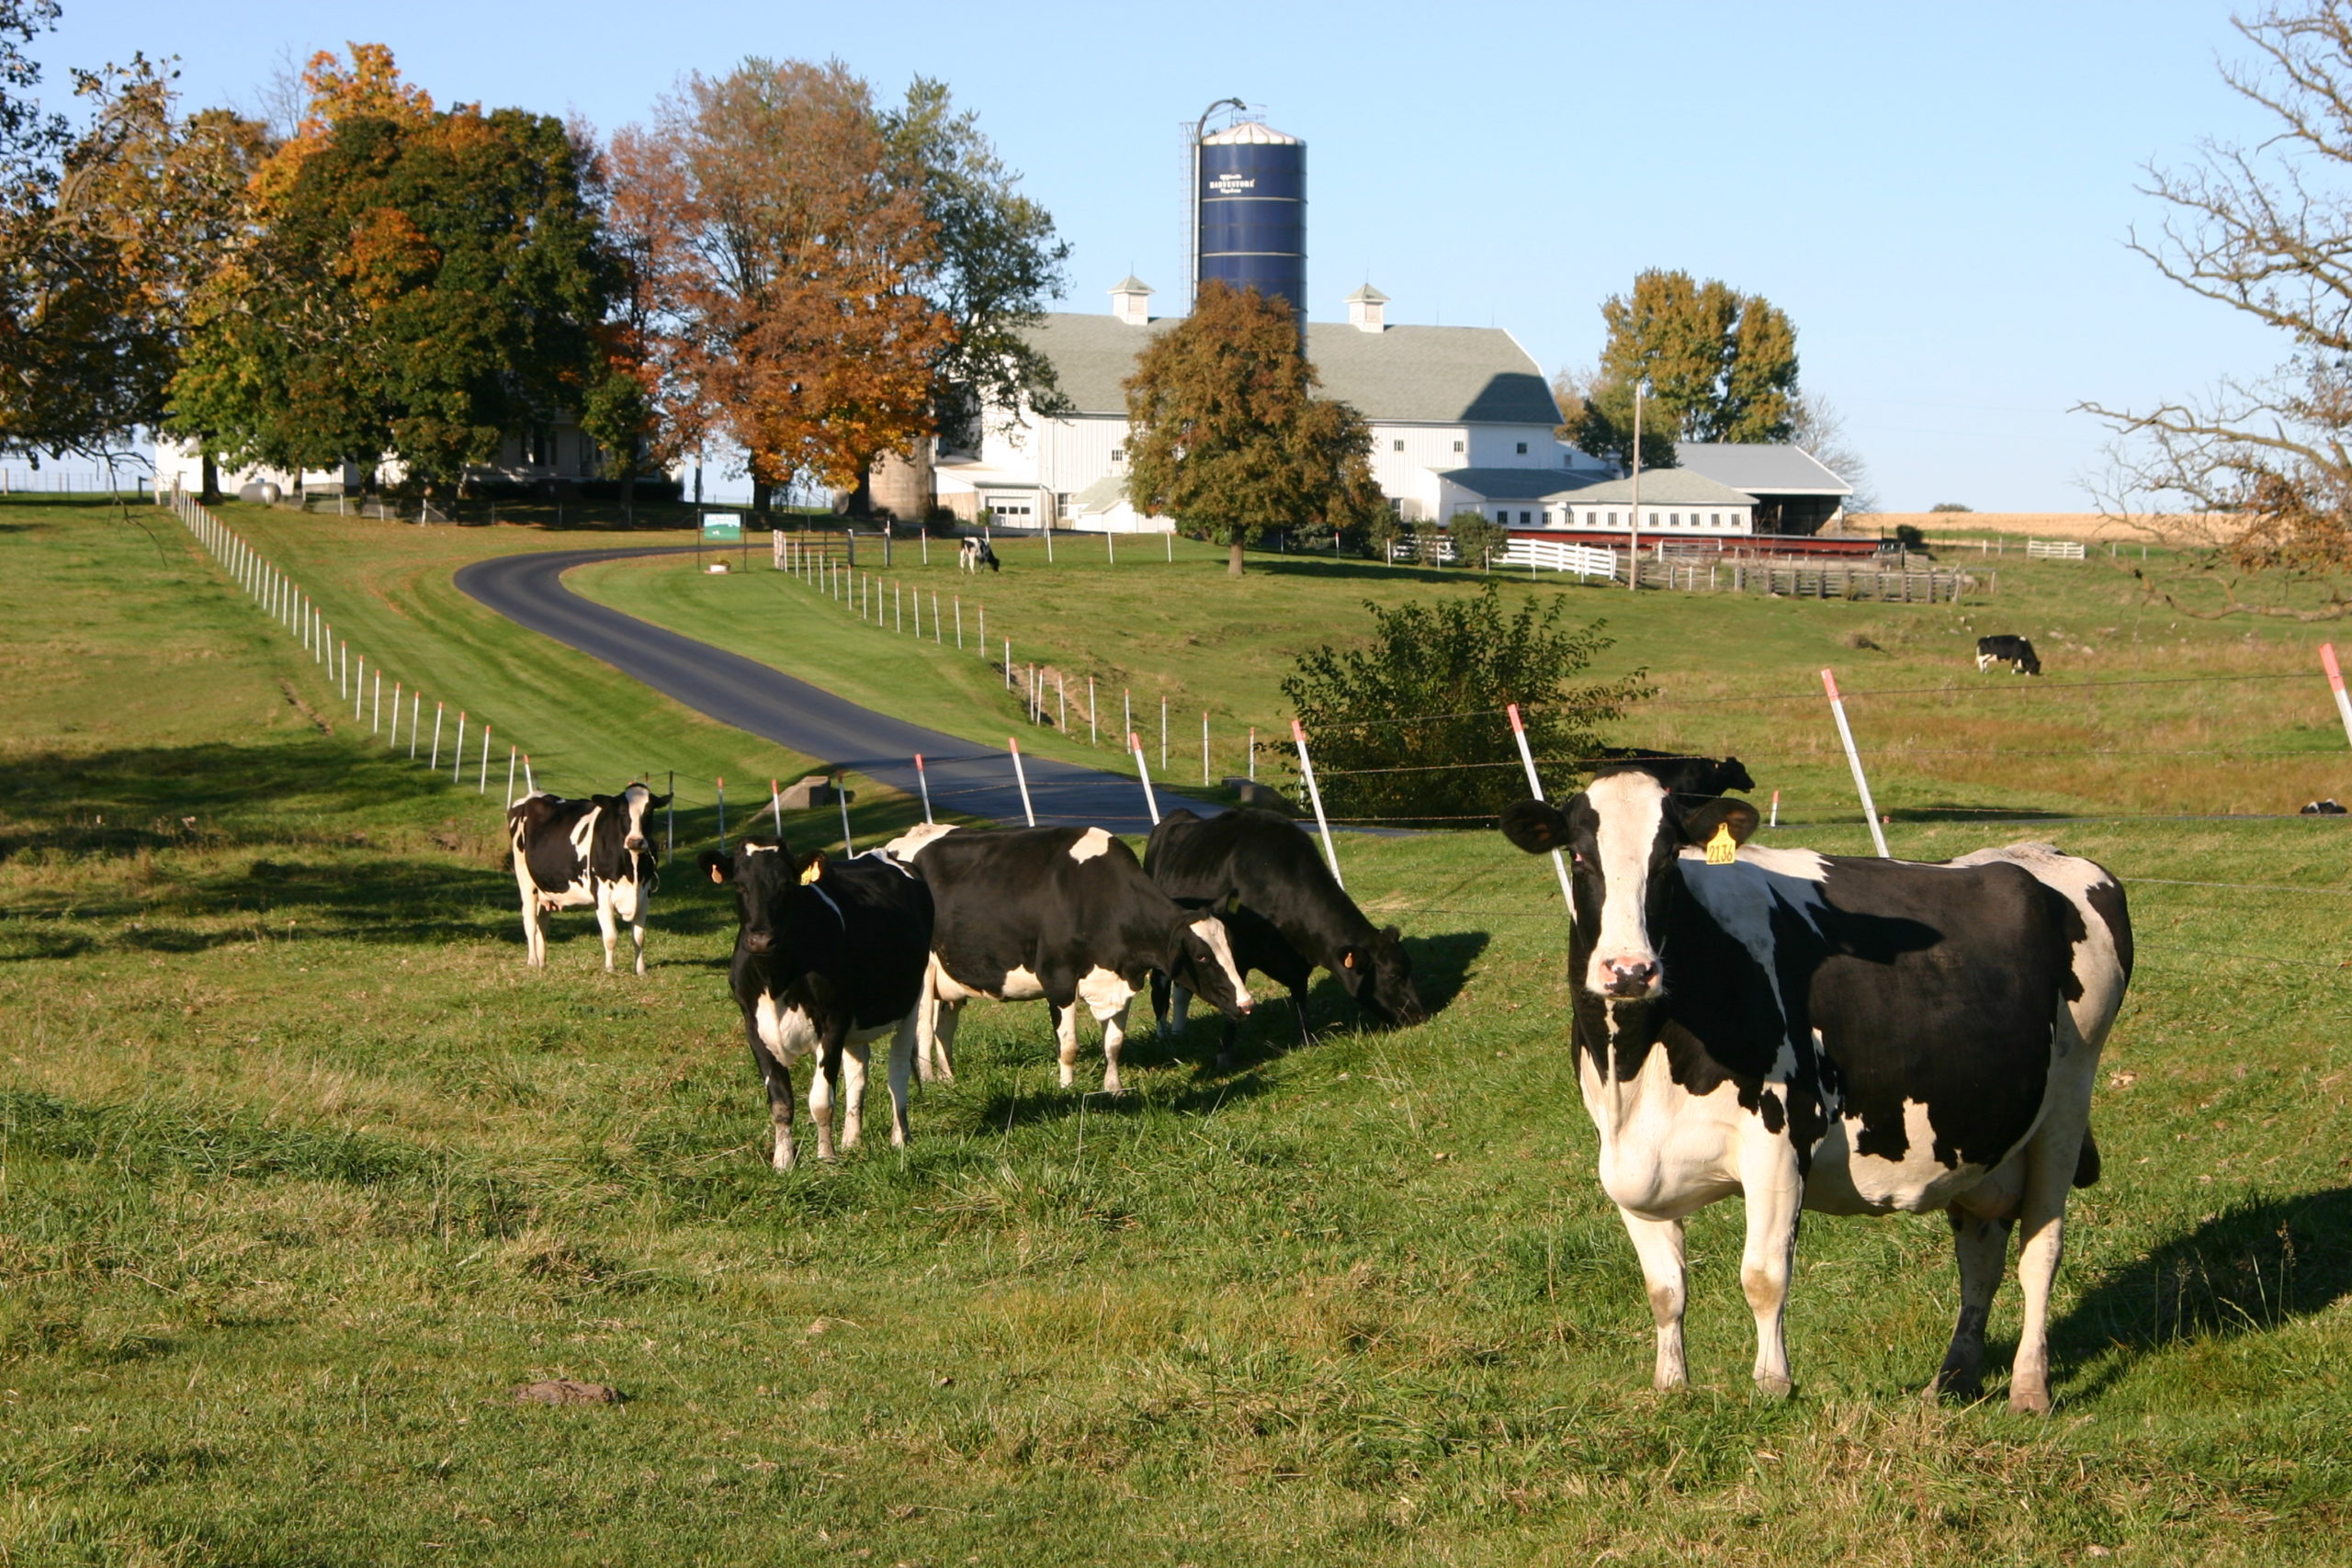 Usda Rual Development High Milk Prices Still Keeping Dairy Cows In The Herd